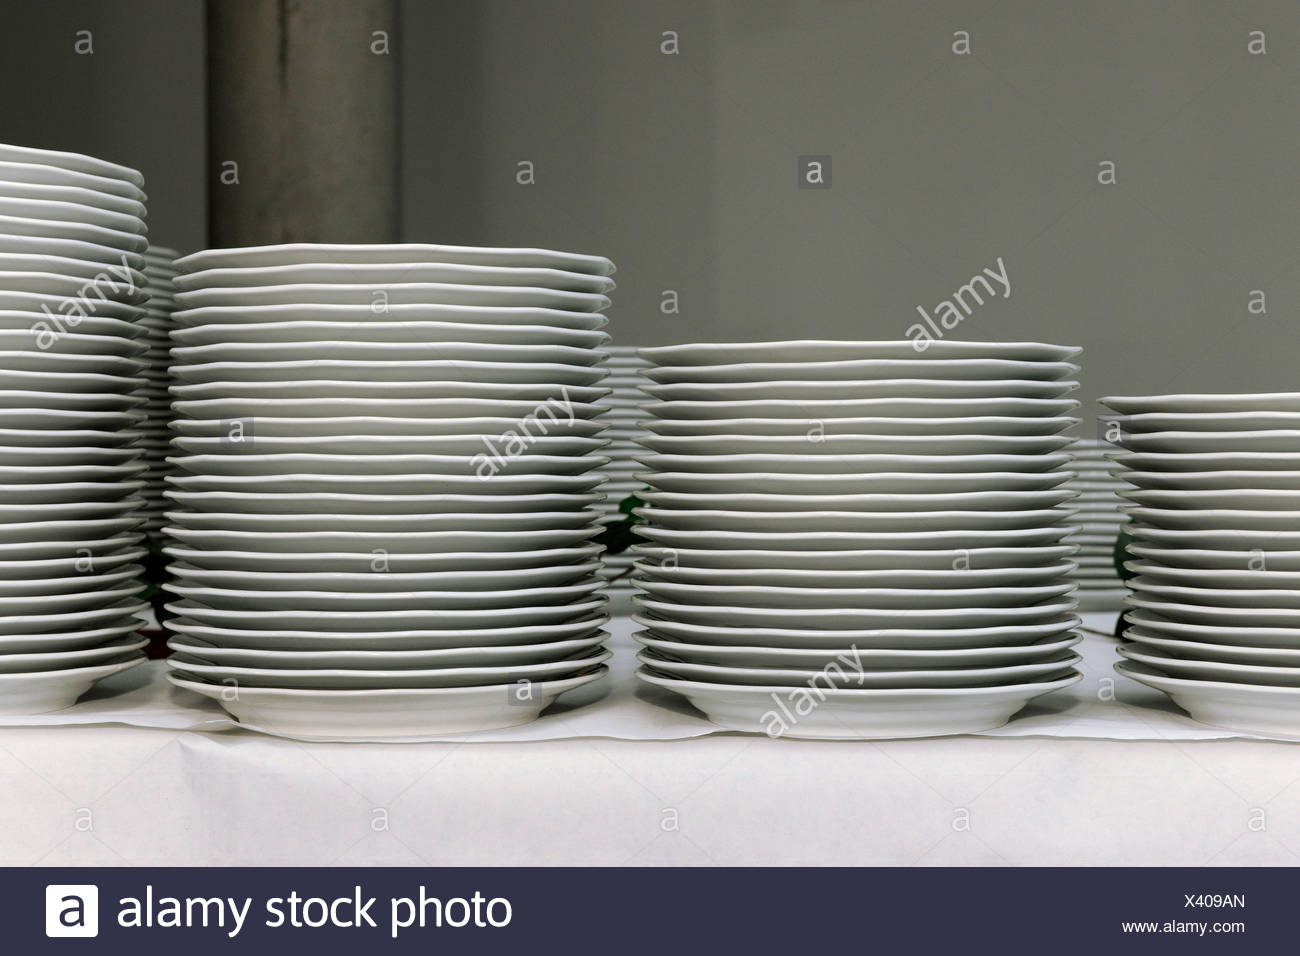 Stacks of white dinner plates on a table, preparations for a corporate event, Thuringia, Germany, Europe - Stock Image